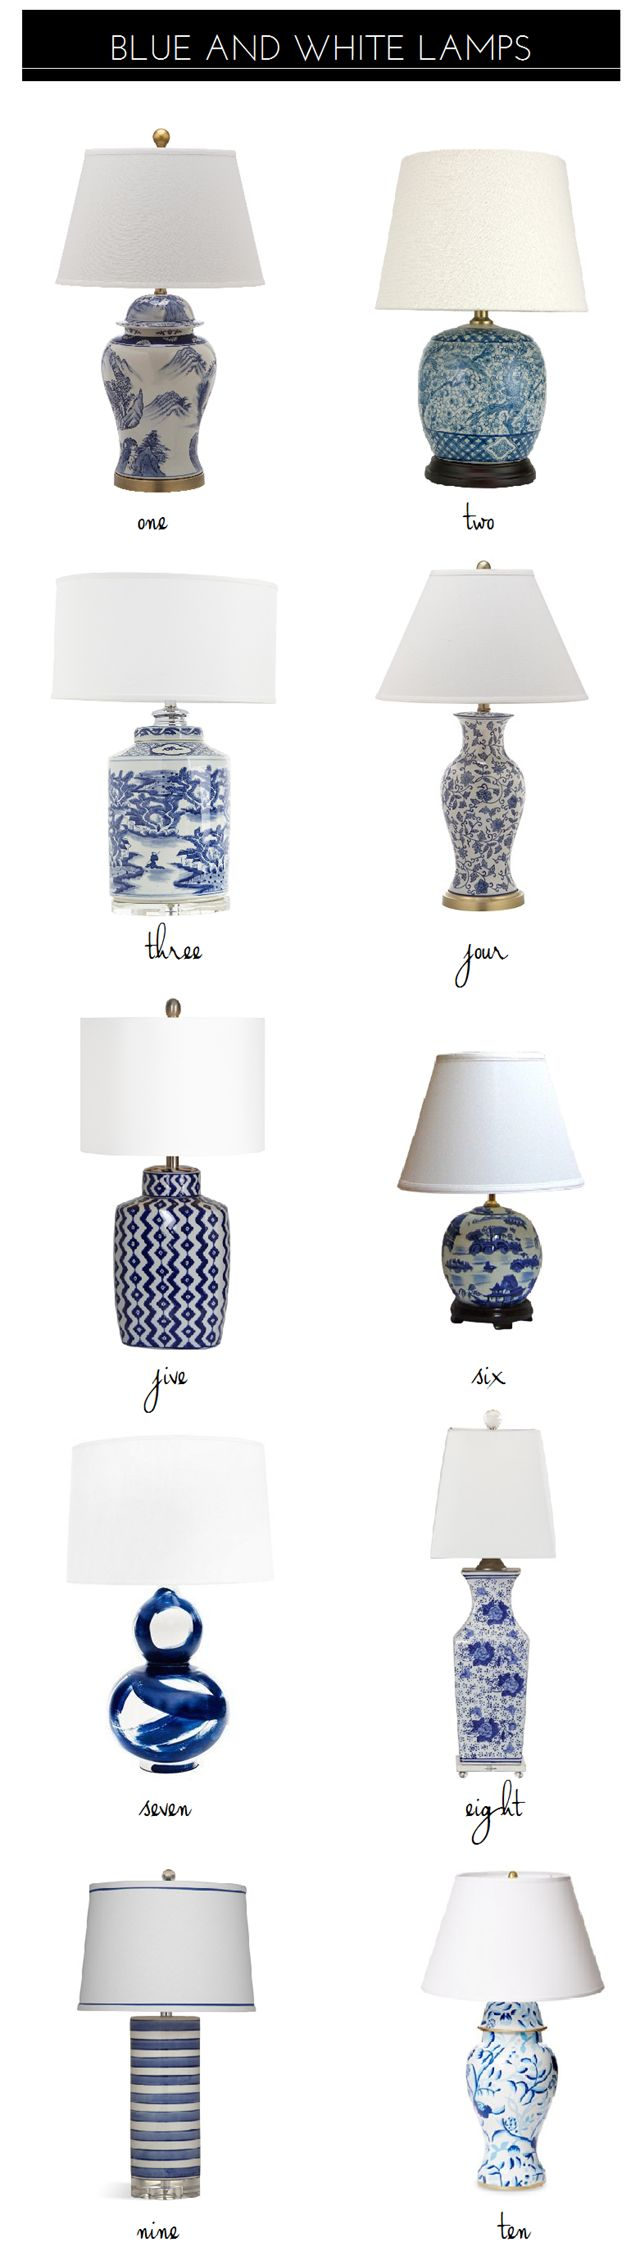 10 Classic Blue And White Lamps - blue and white lamps (product source list in blog post). Emily A. Clark | www.bocadolobo.com/ #lighting ideas #lighting